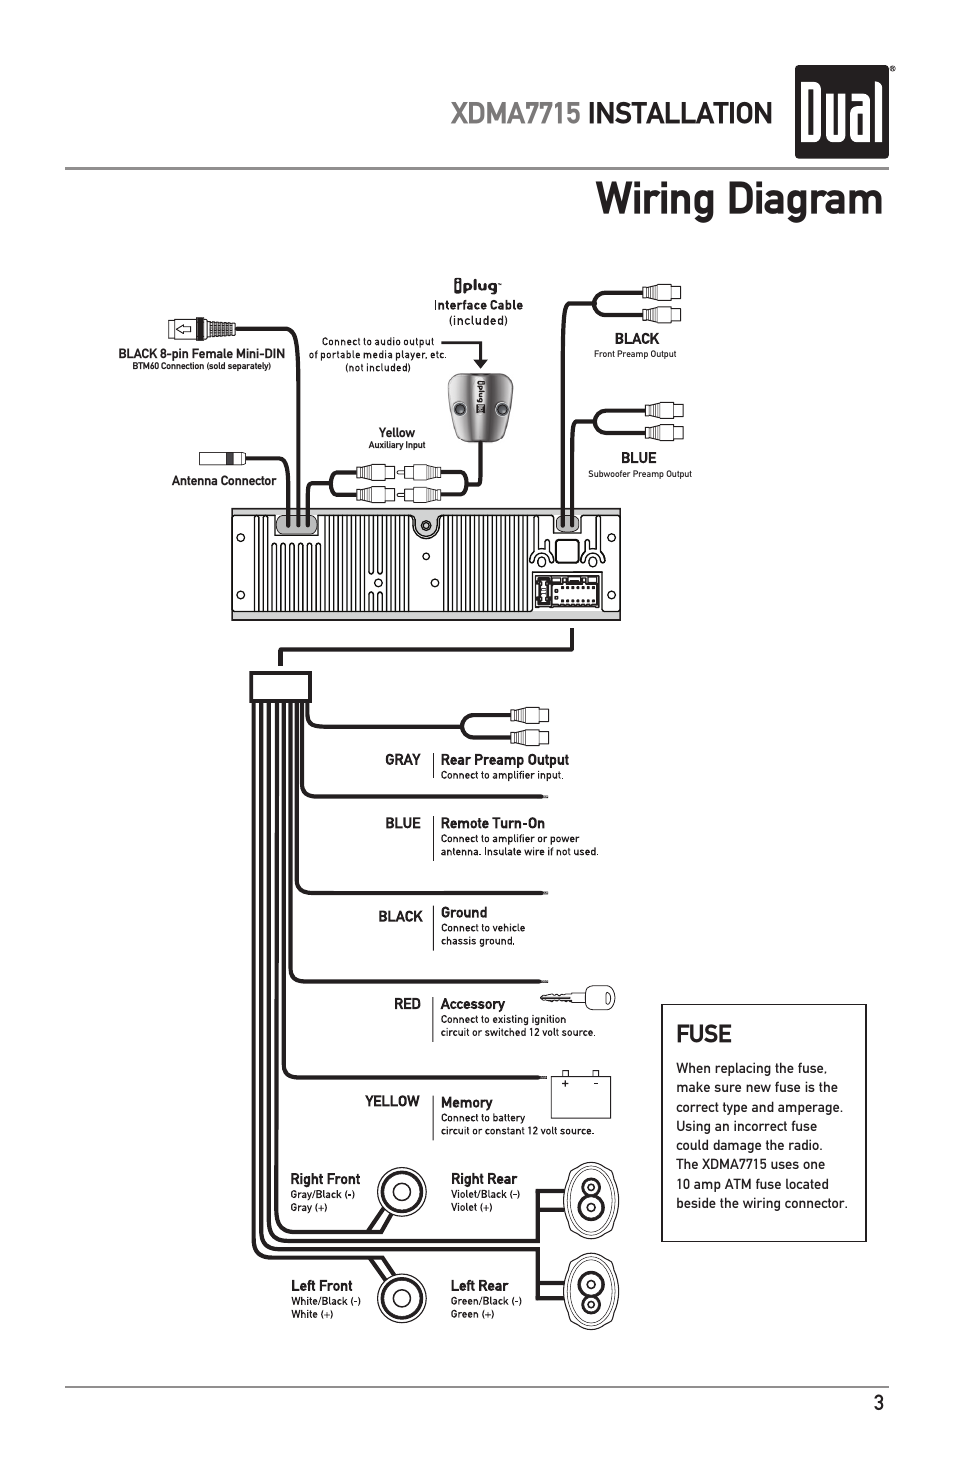 wiring diagram  xdma7715 installation  fuse